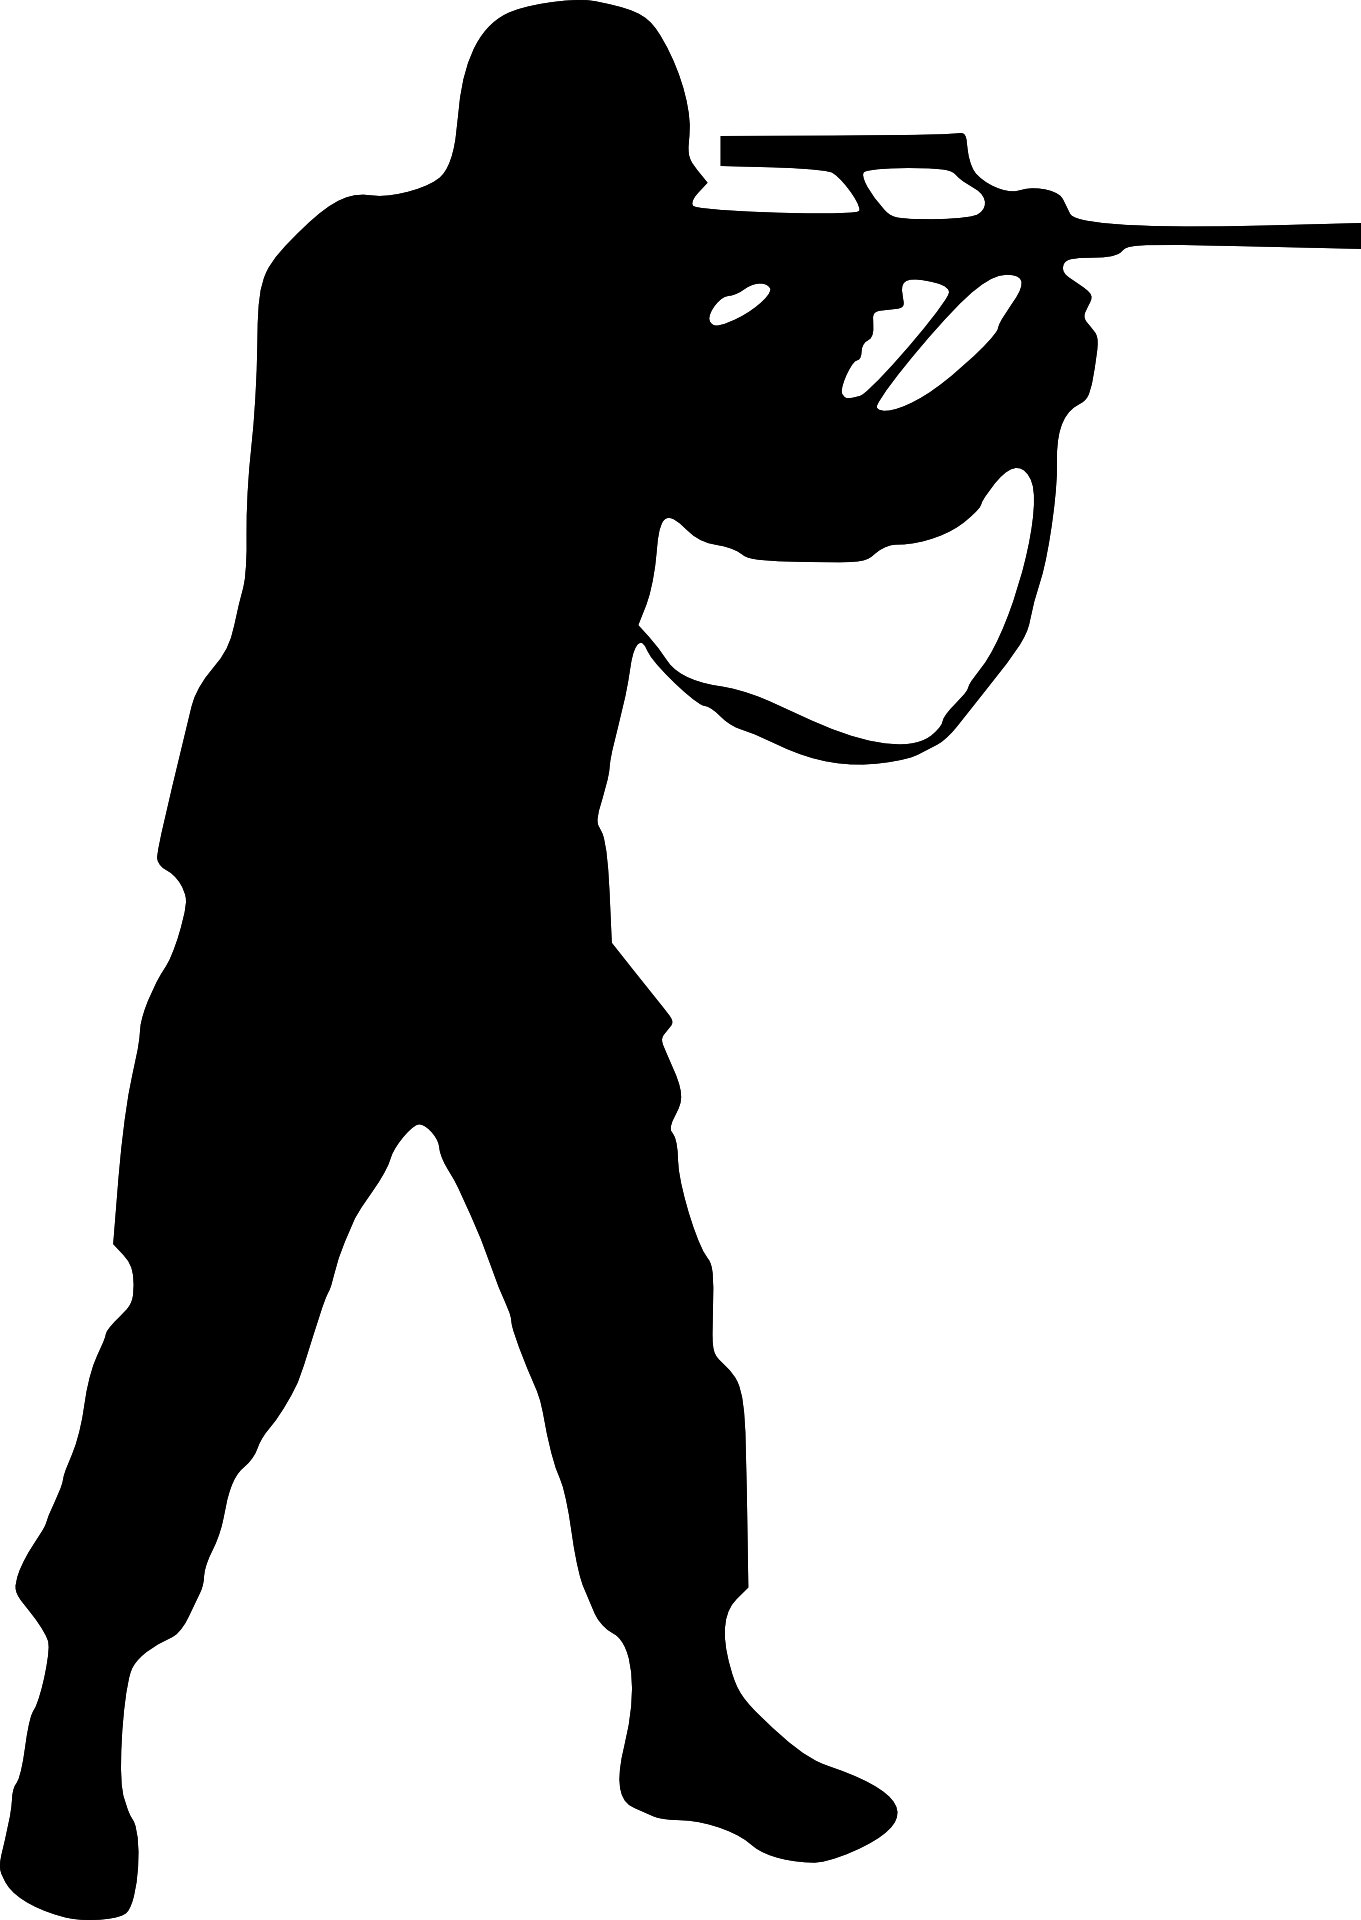 Person shooting a basketball clipart jpg free stock Man Shooting Silhouette at GetDrawings.com | Free for personal use ... jpg free stock